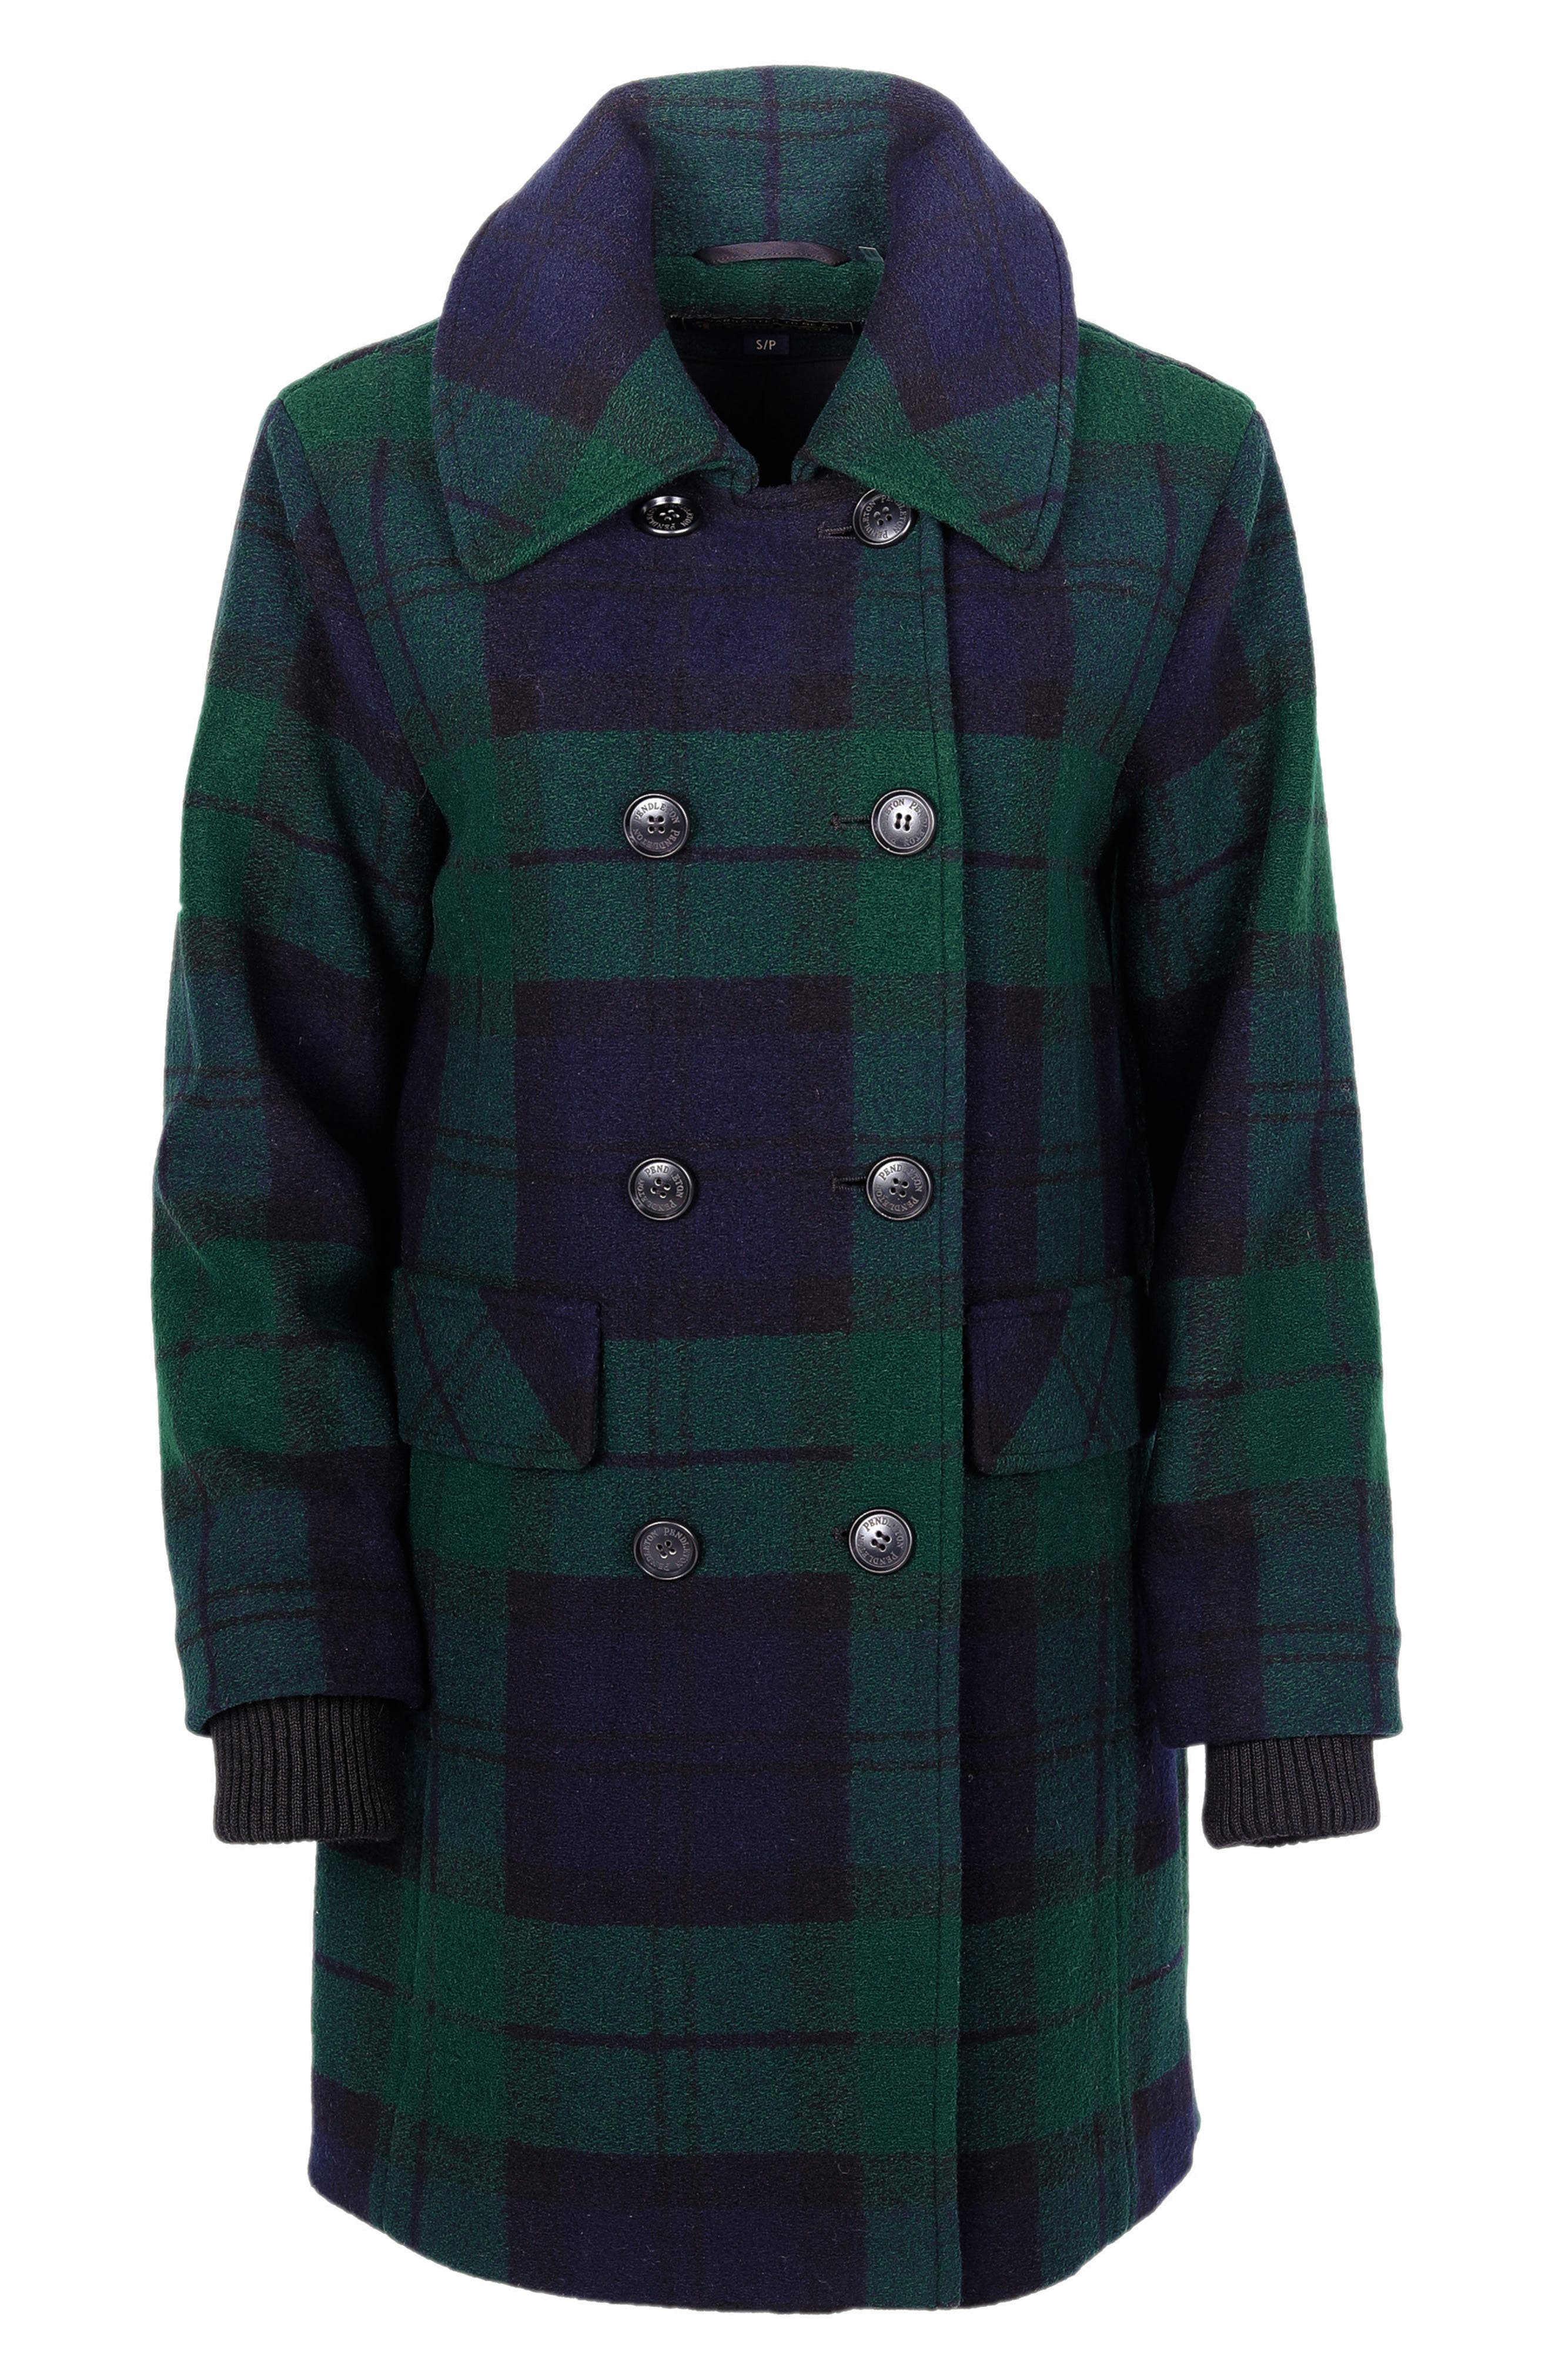 Vintage Coats & Jackets | Retro Coats and Jackets Womens Pendleton Forest Park Double Breasted Wool Blend Coat $229.90 AT vintagedancer.com